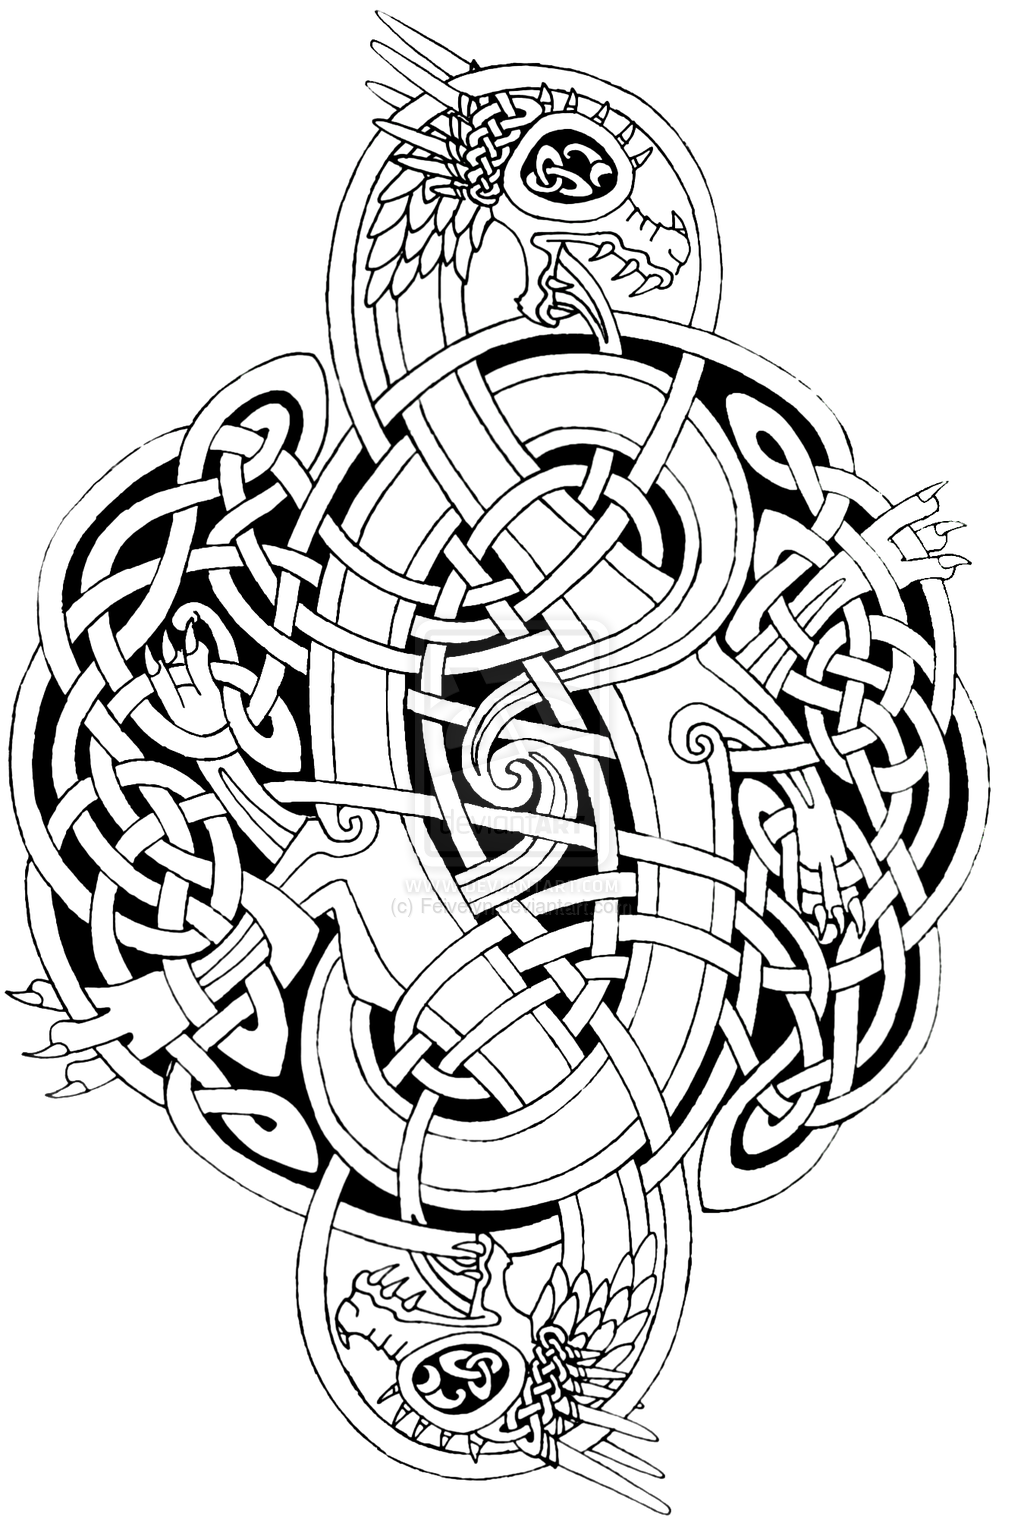 Mandala coloring pages dragons - Images For Celtic Dragons Art Celtic Mandala Coloring Pages